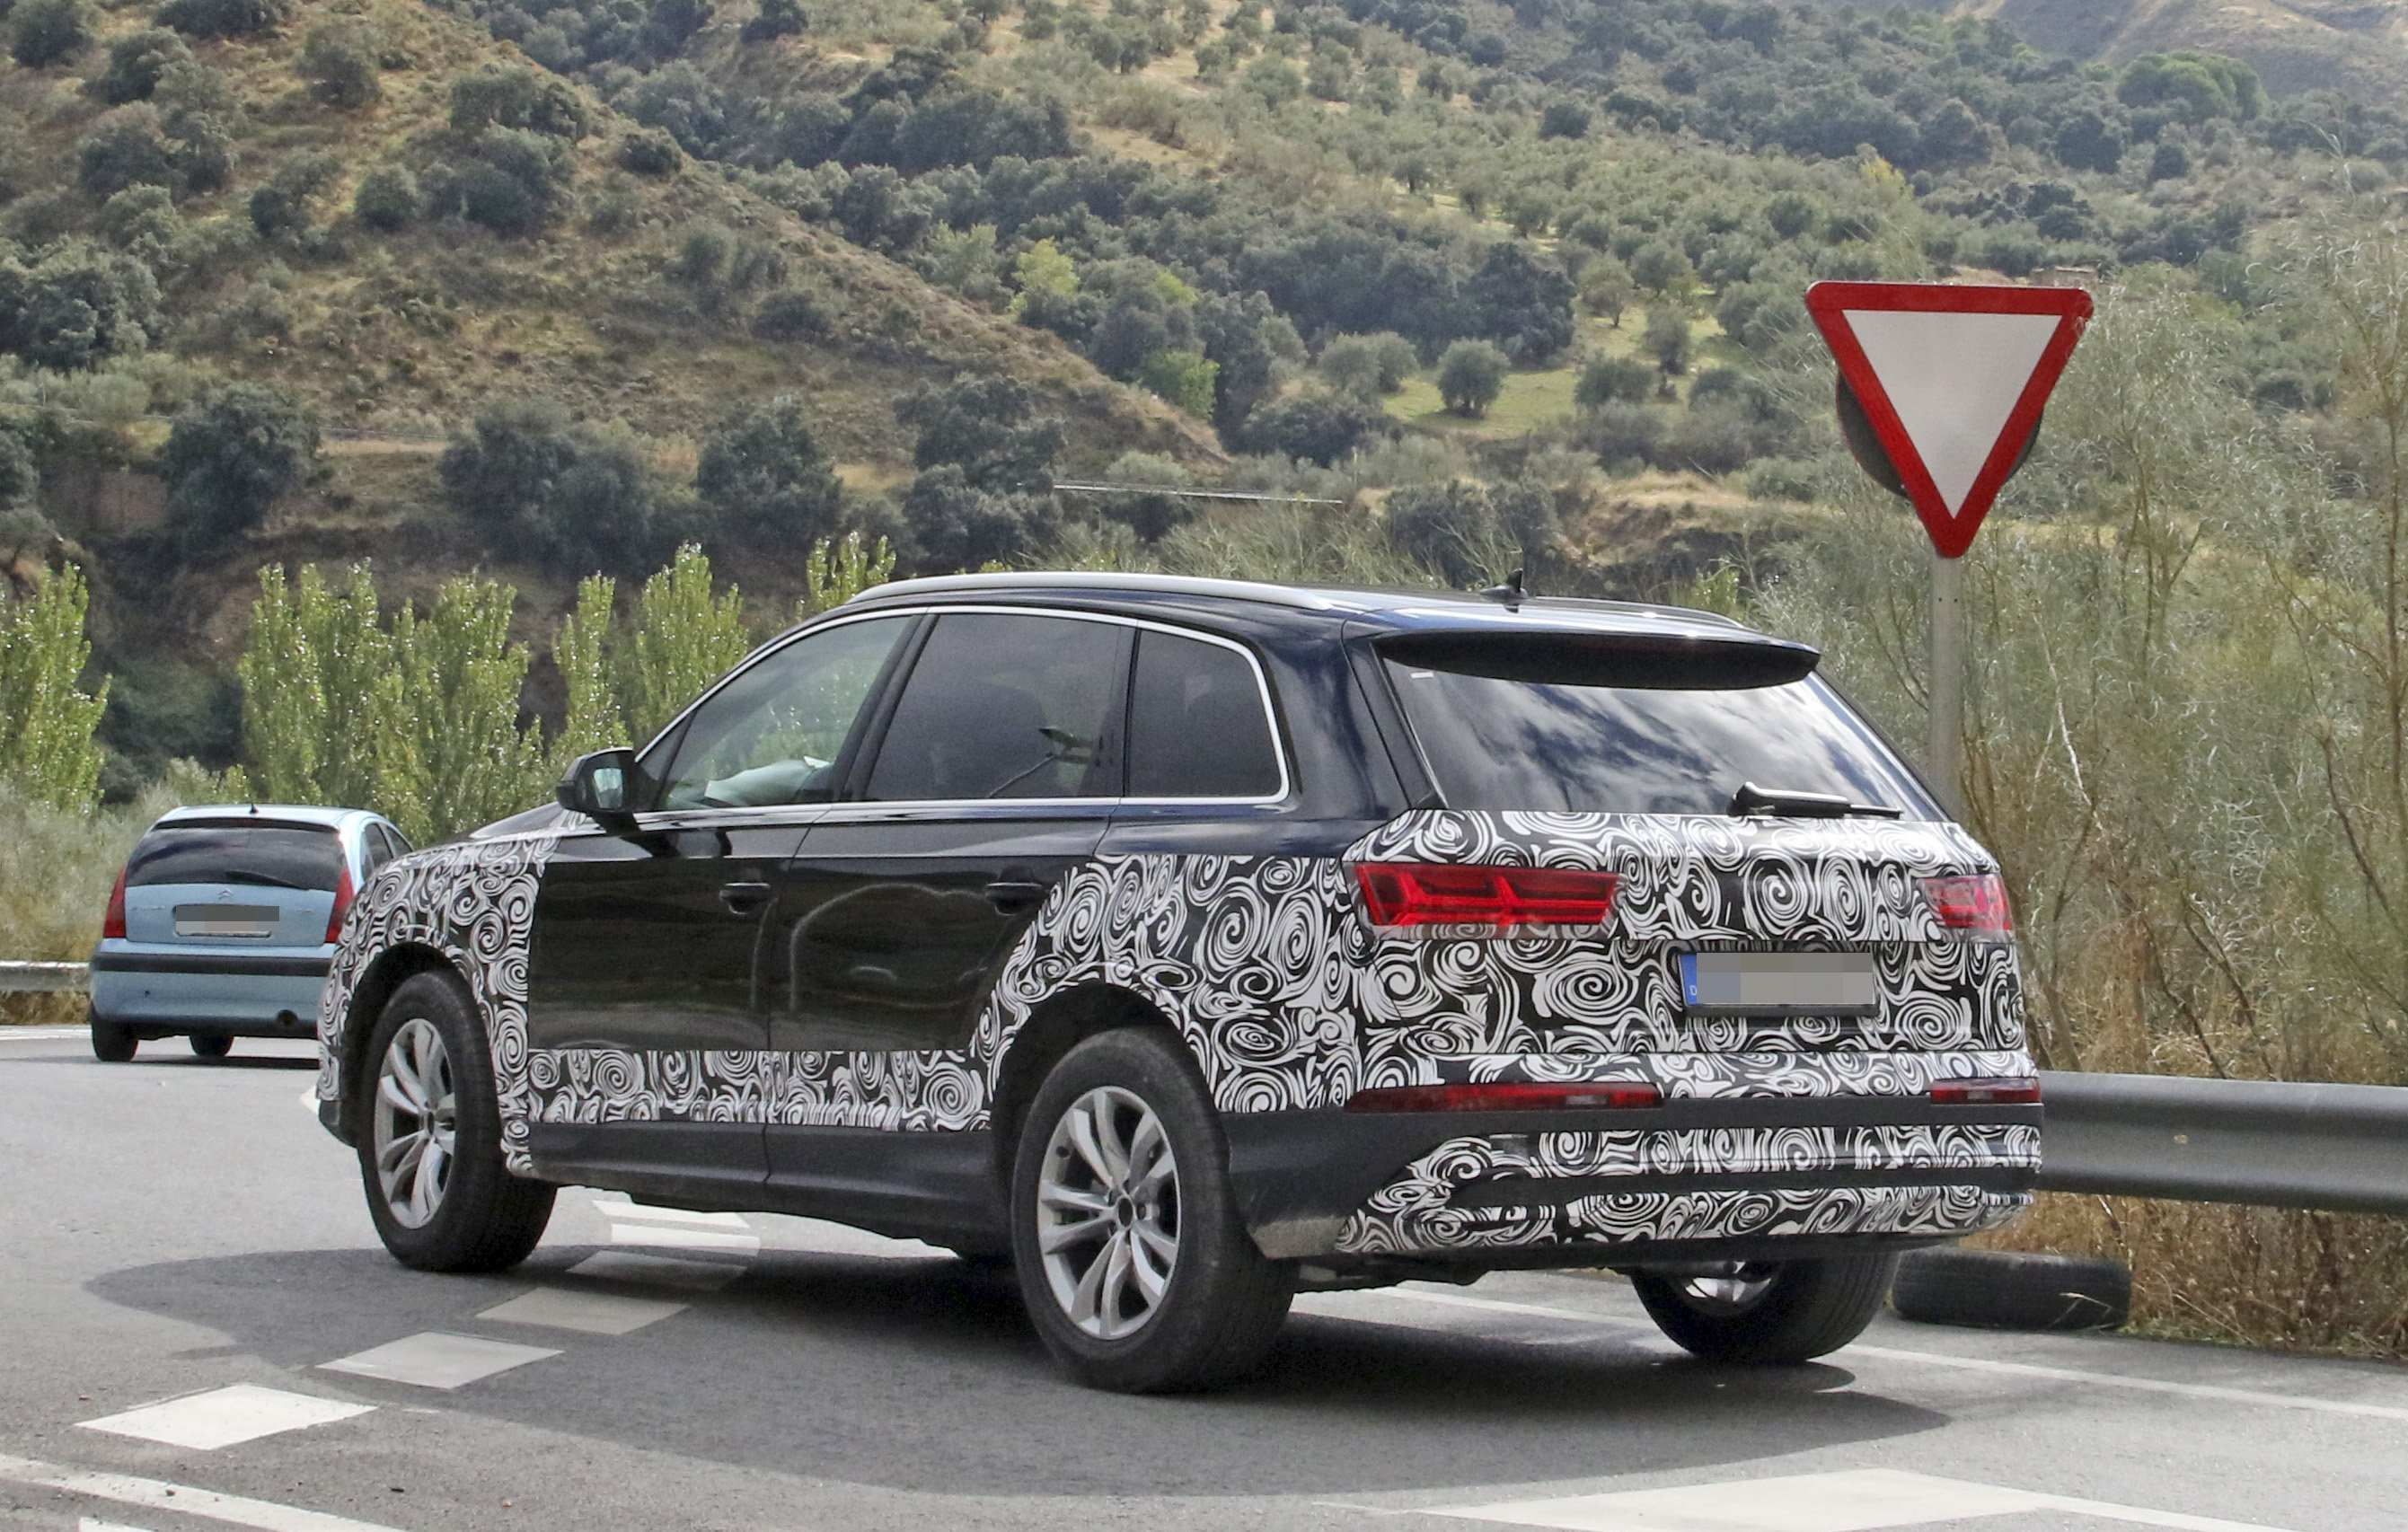 38 New Audi Q7 2020 Facelift Pricing